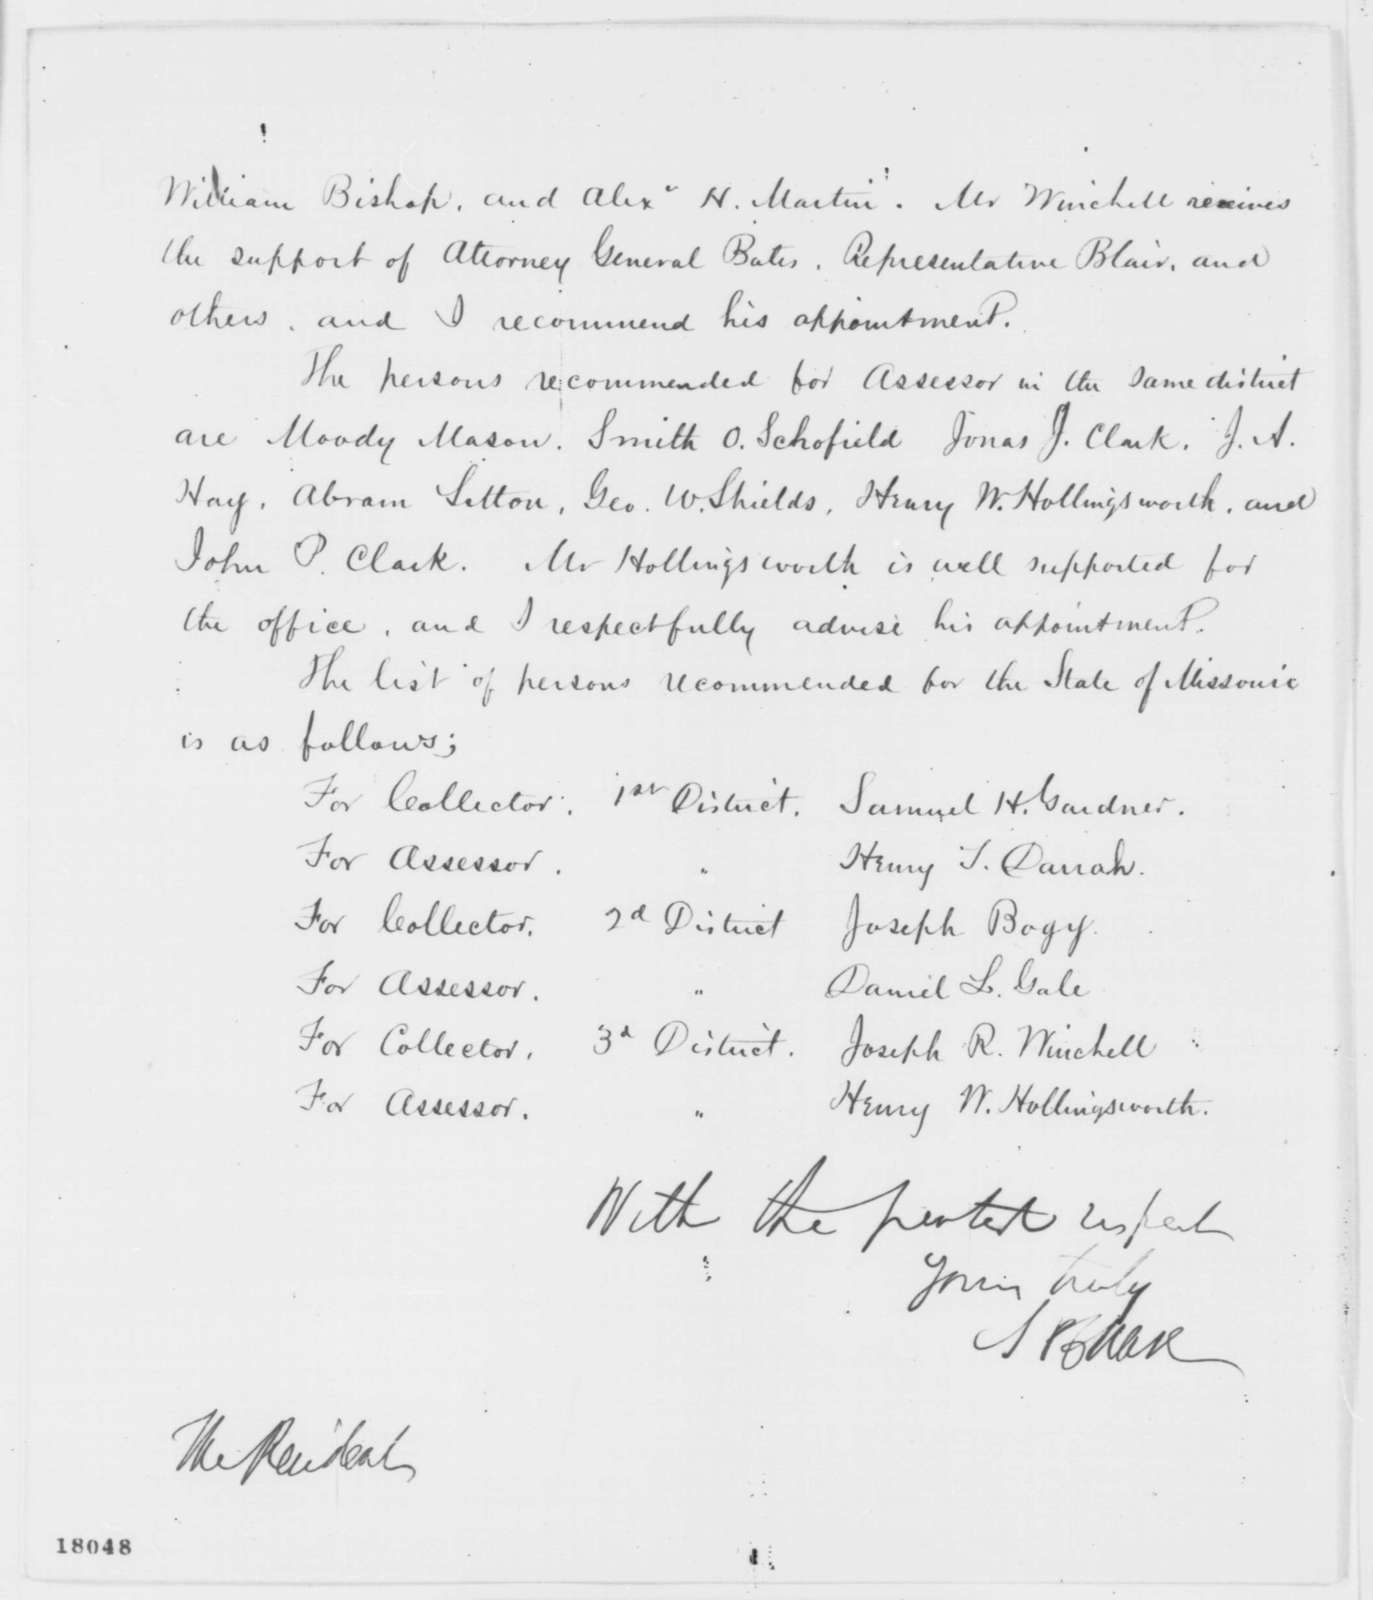 Salmon P. Chase to Abraham Lincoln, Thursday, August 28, 1862  (Missouri appointments)